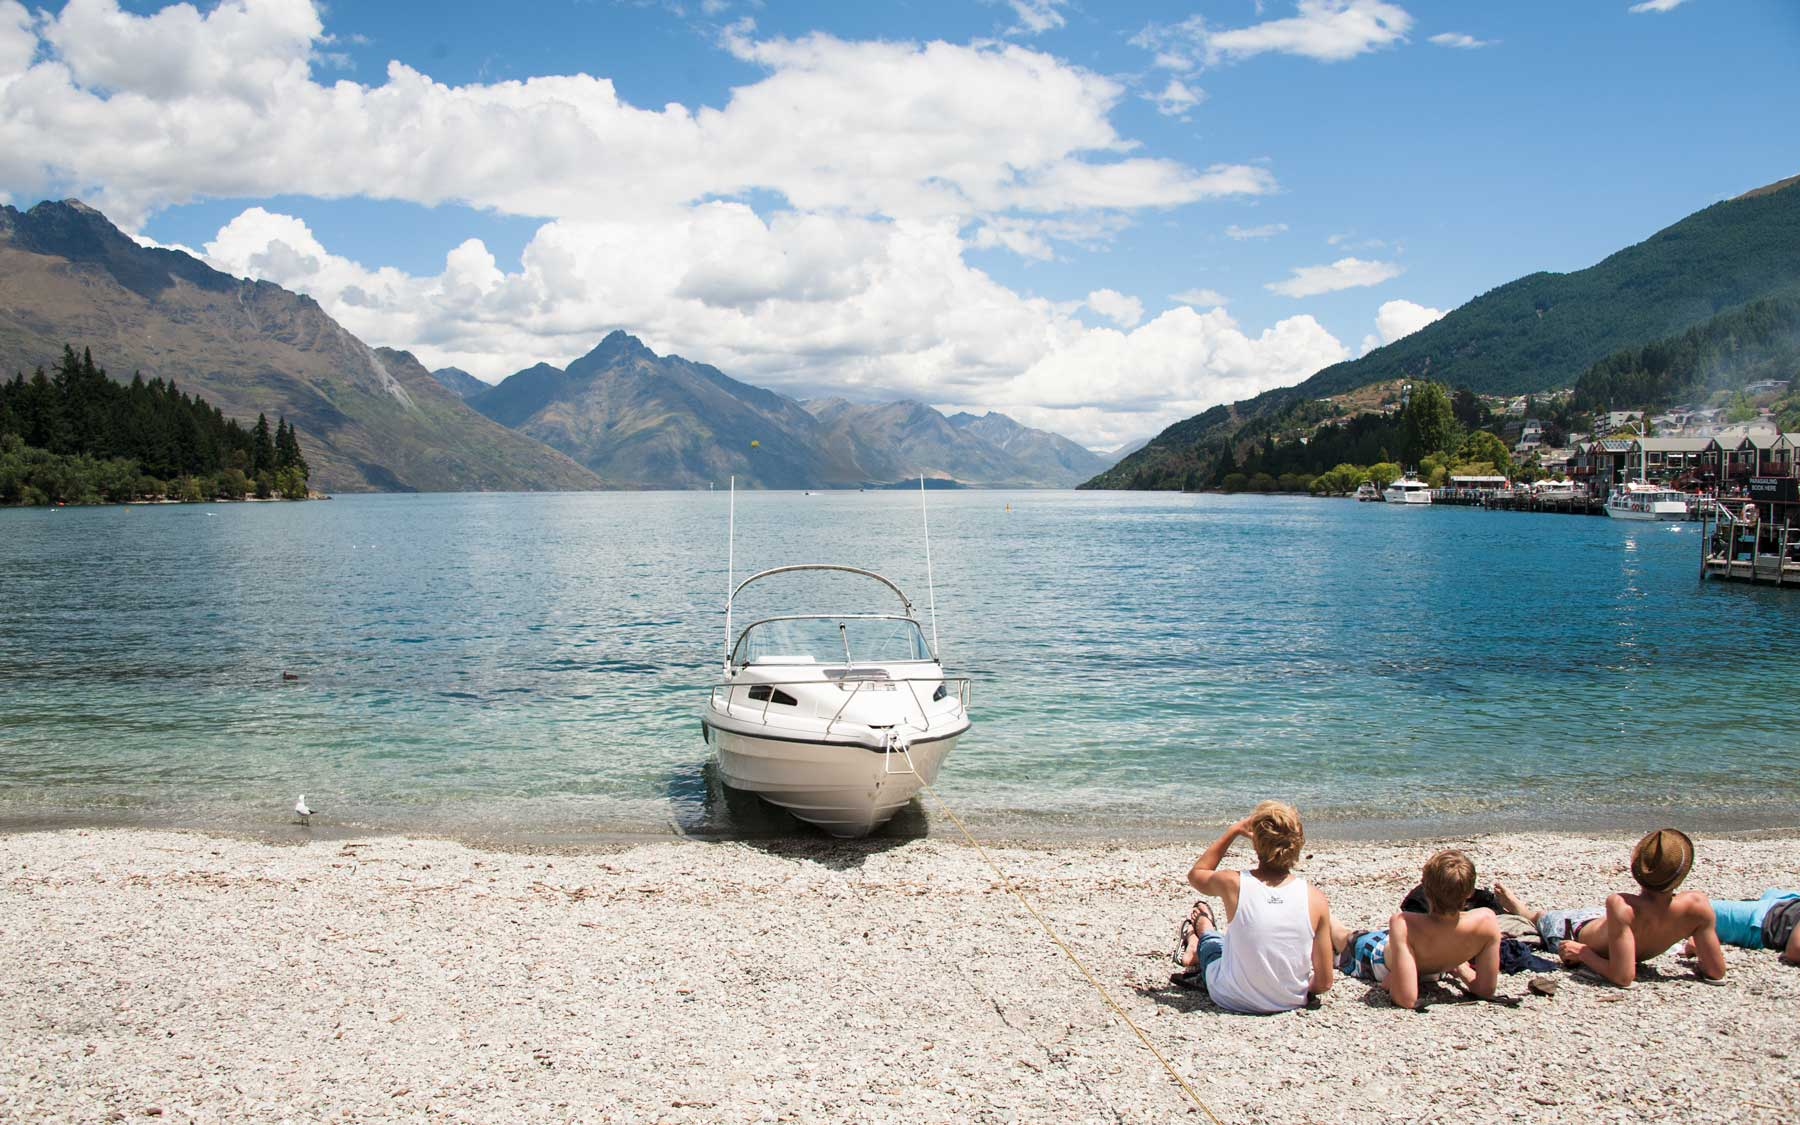 Revellers soak in the summer heat at Lake Wakatipu, Queenstown.